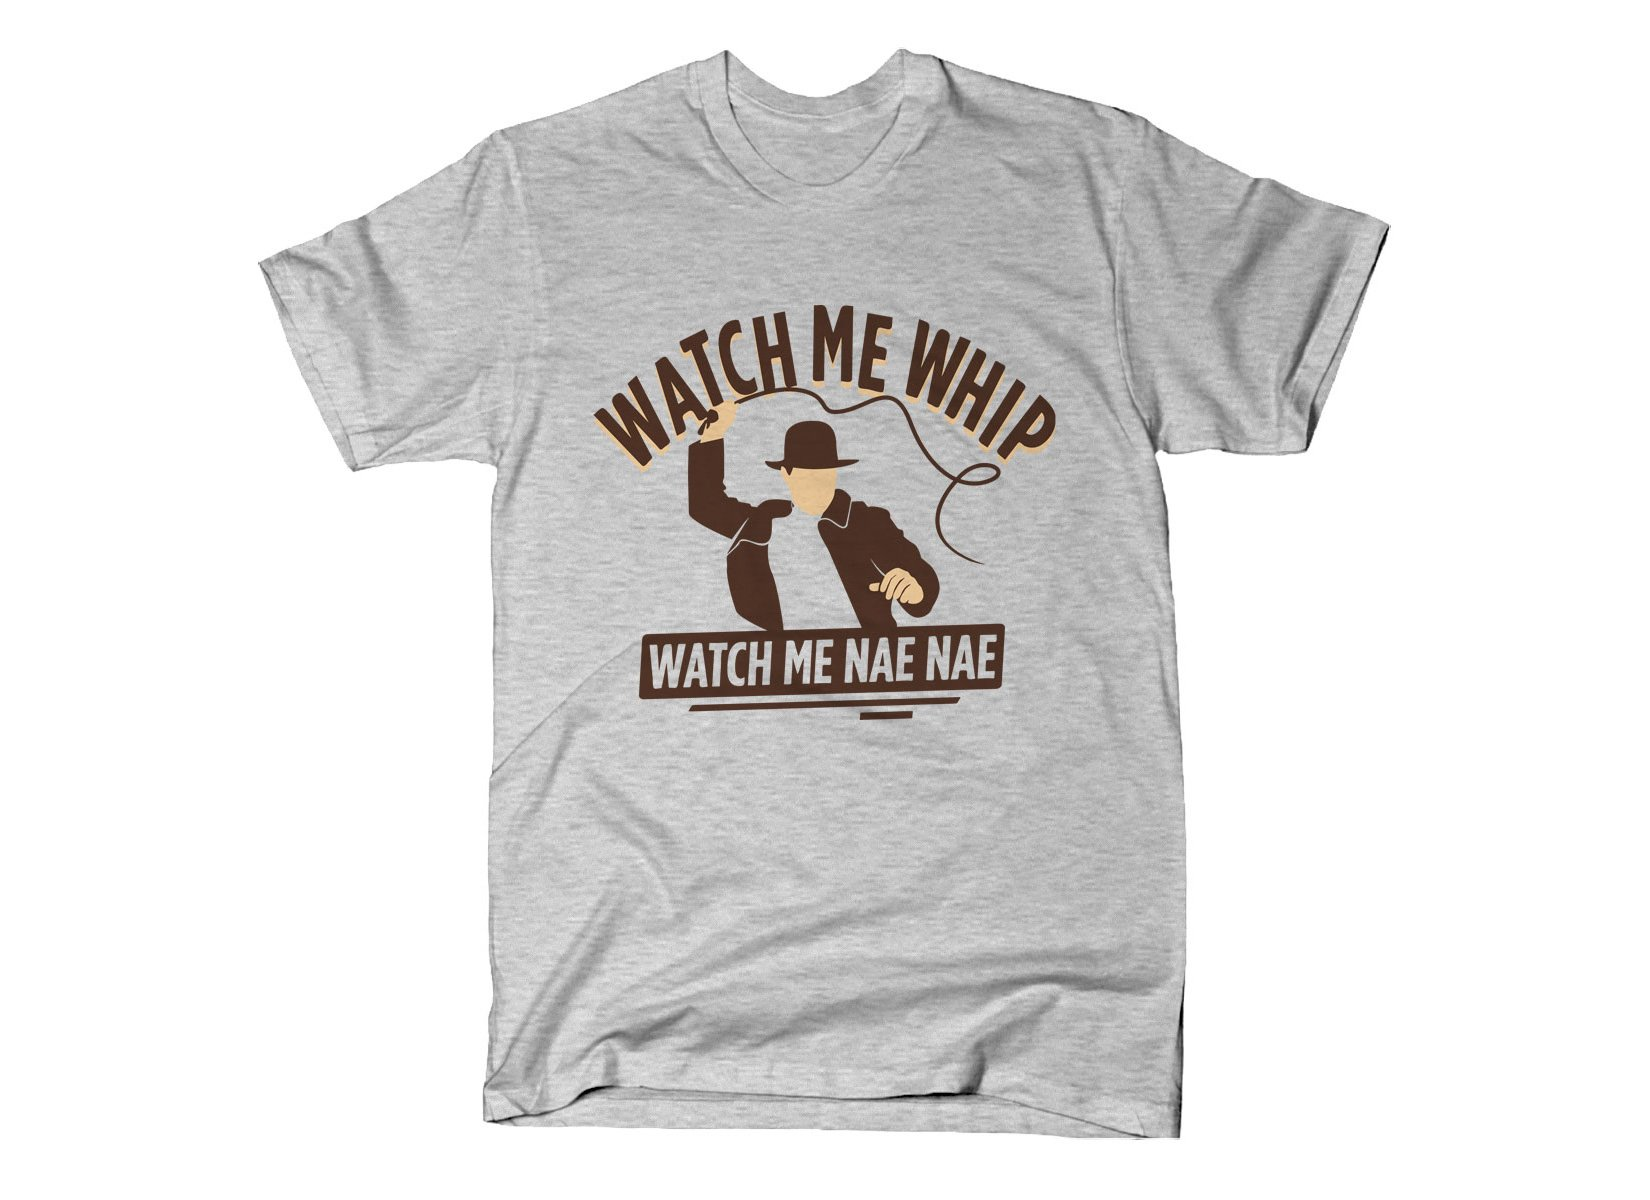 Watch Me Whip on Mens T-Shirt